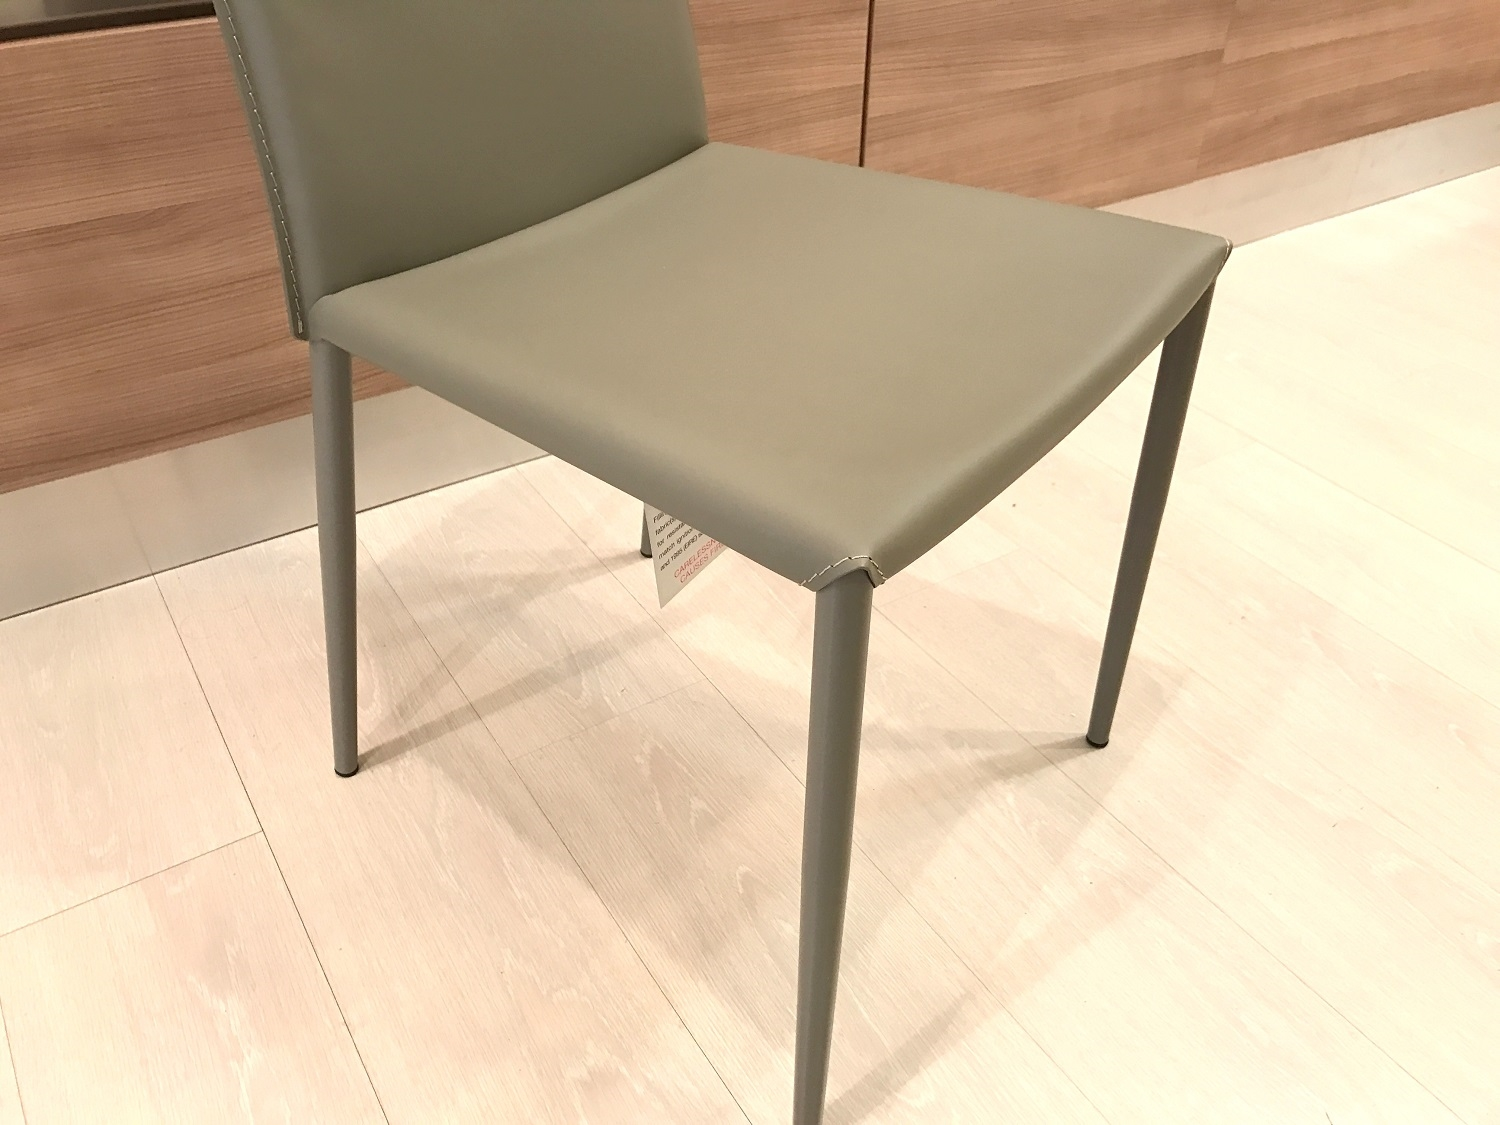 Awesome Sedie Calligaris Offerta Images - Skilifts.us - skilifts.us